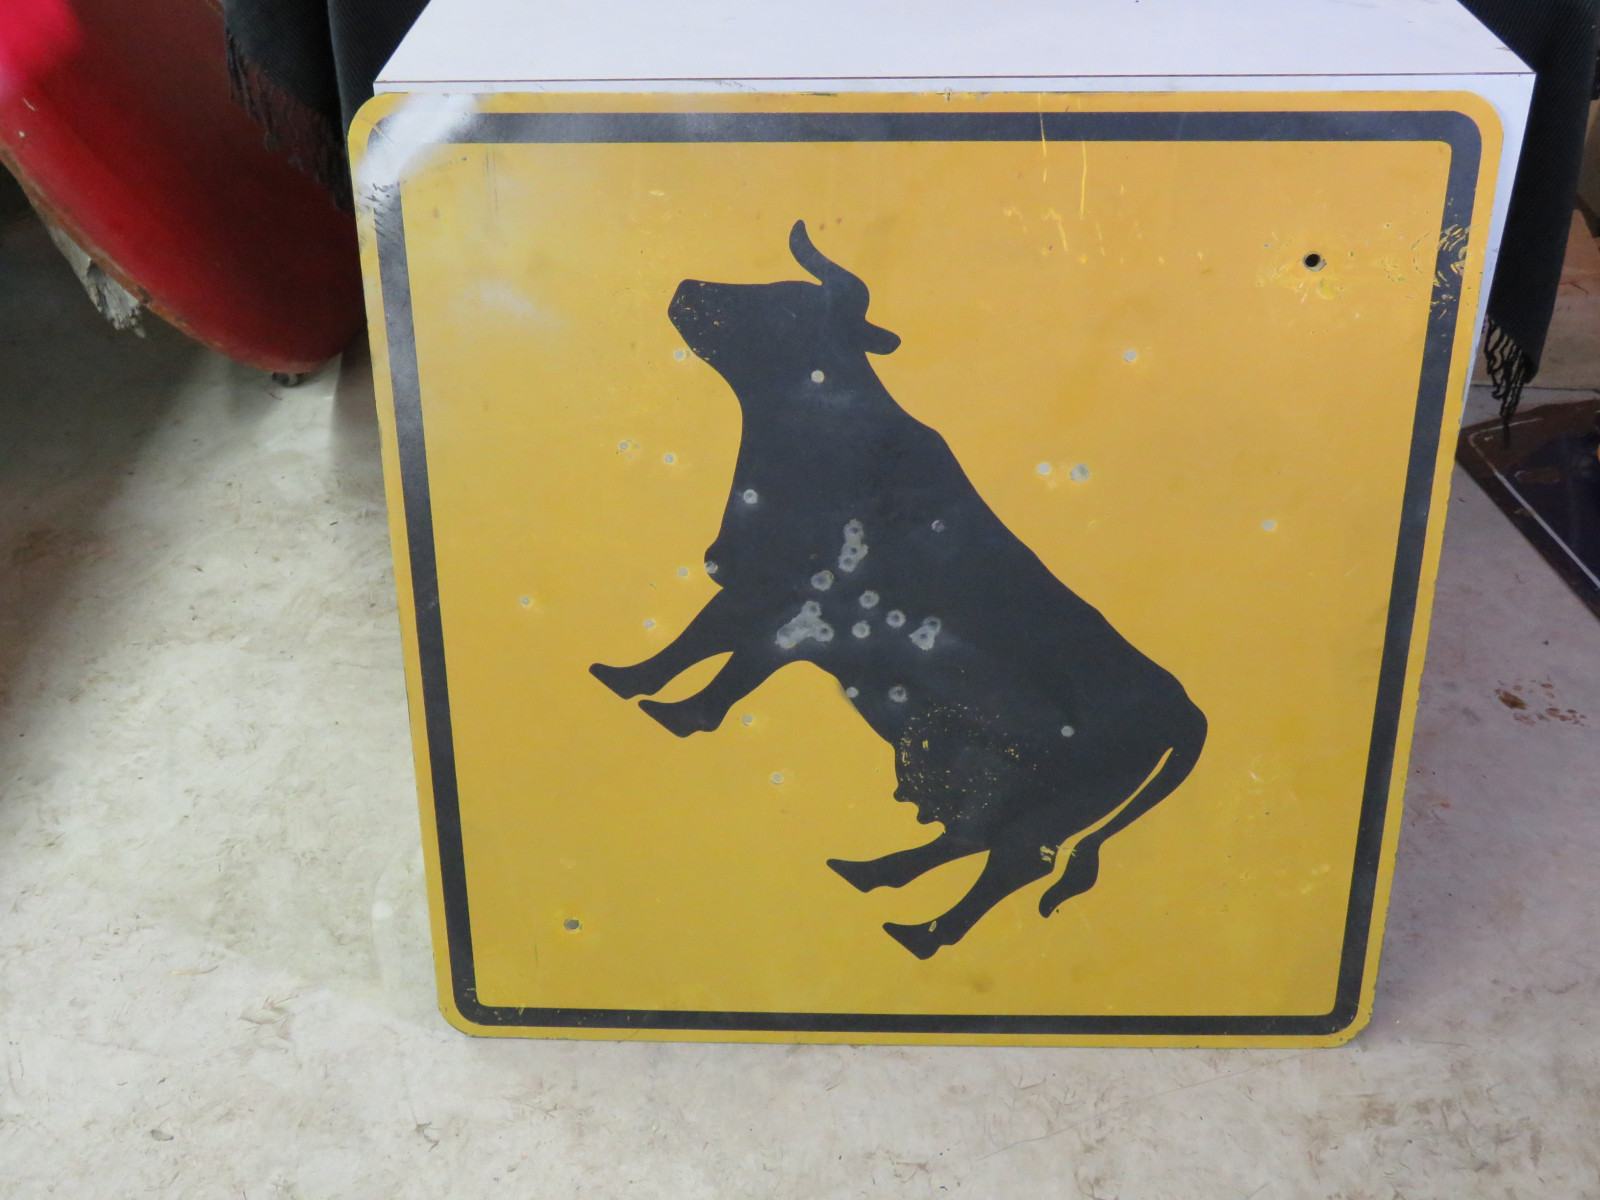 Cattle Crossing sign - Image 2